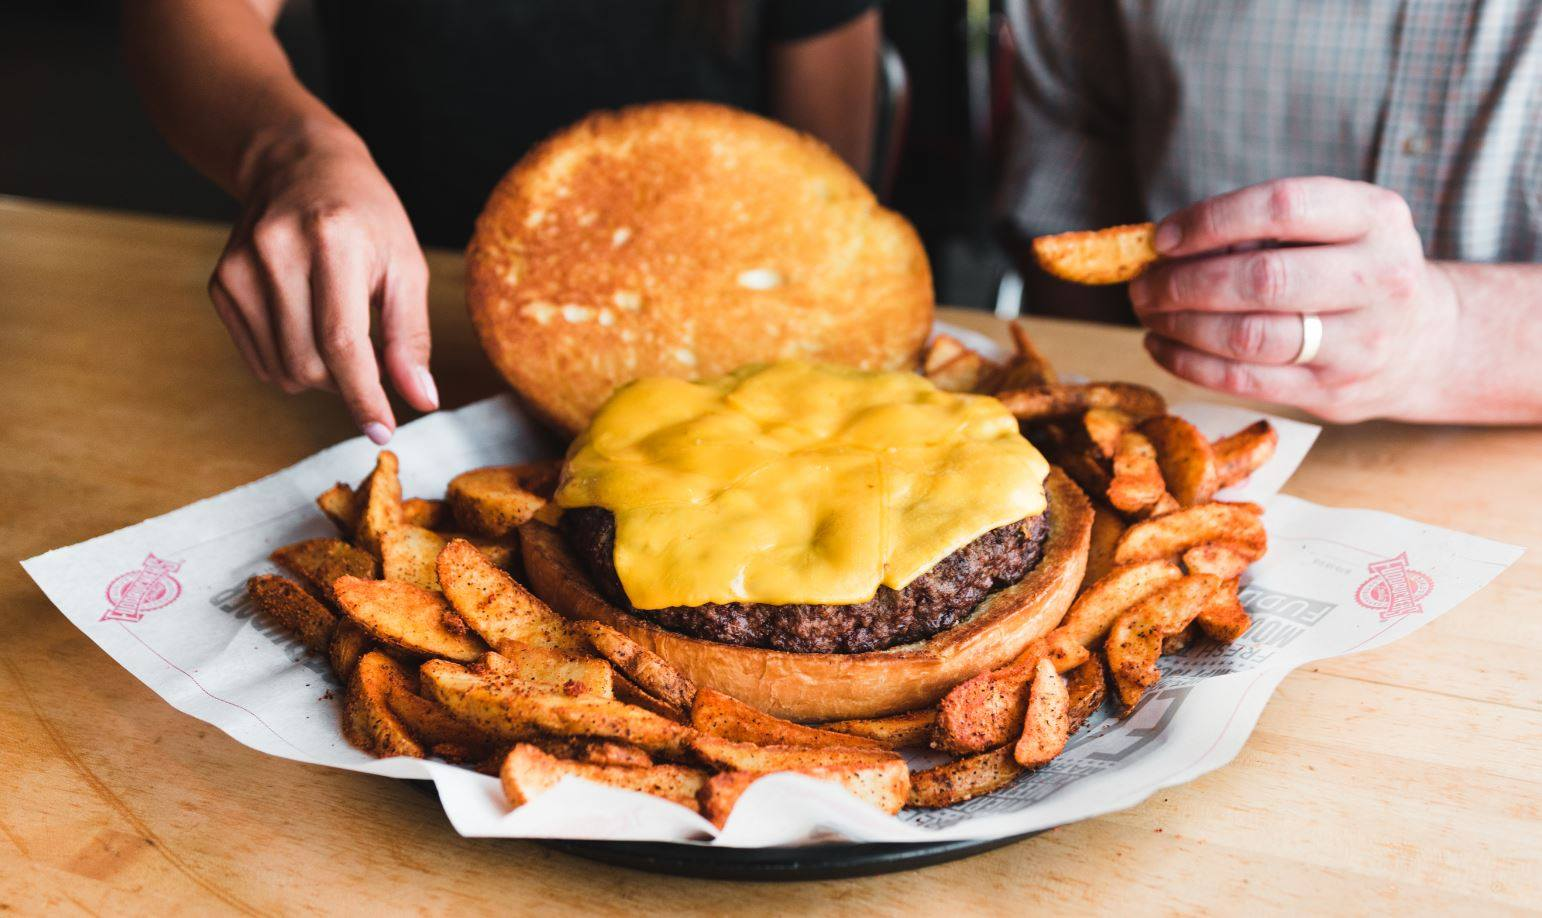 National Cheeseburger Day Deals 2018 - picture of a Fuddruckers 3-pound challenge